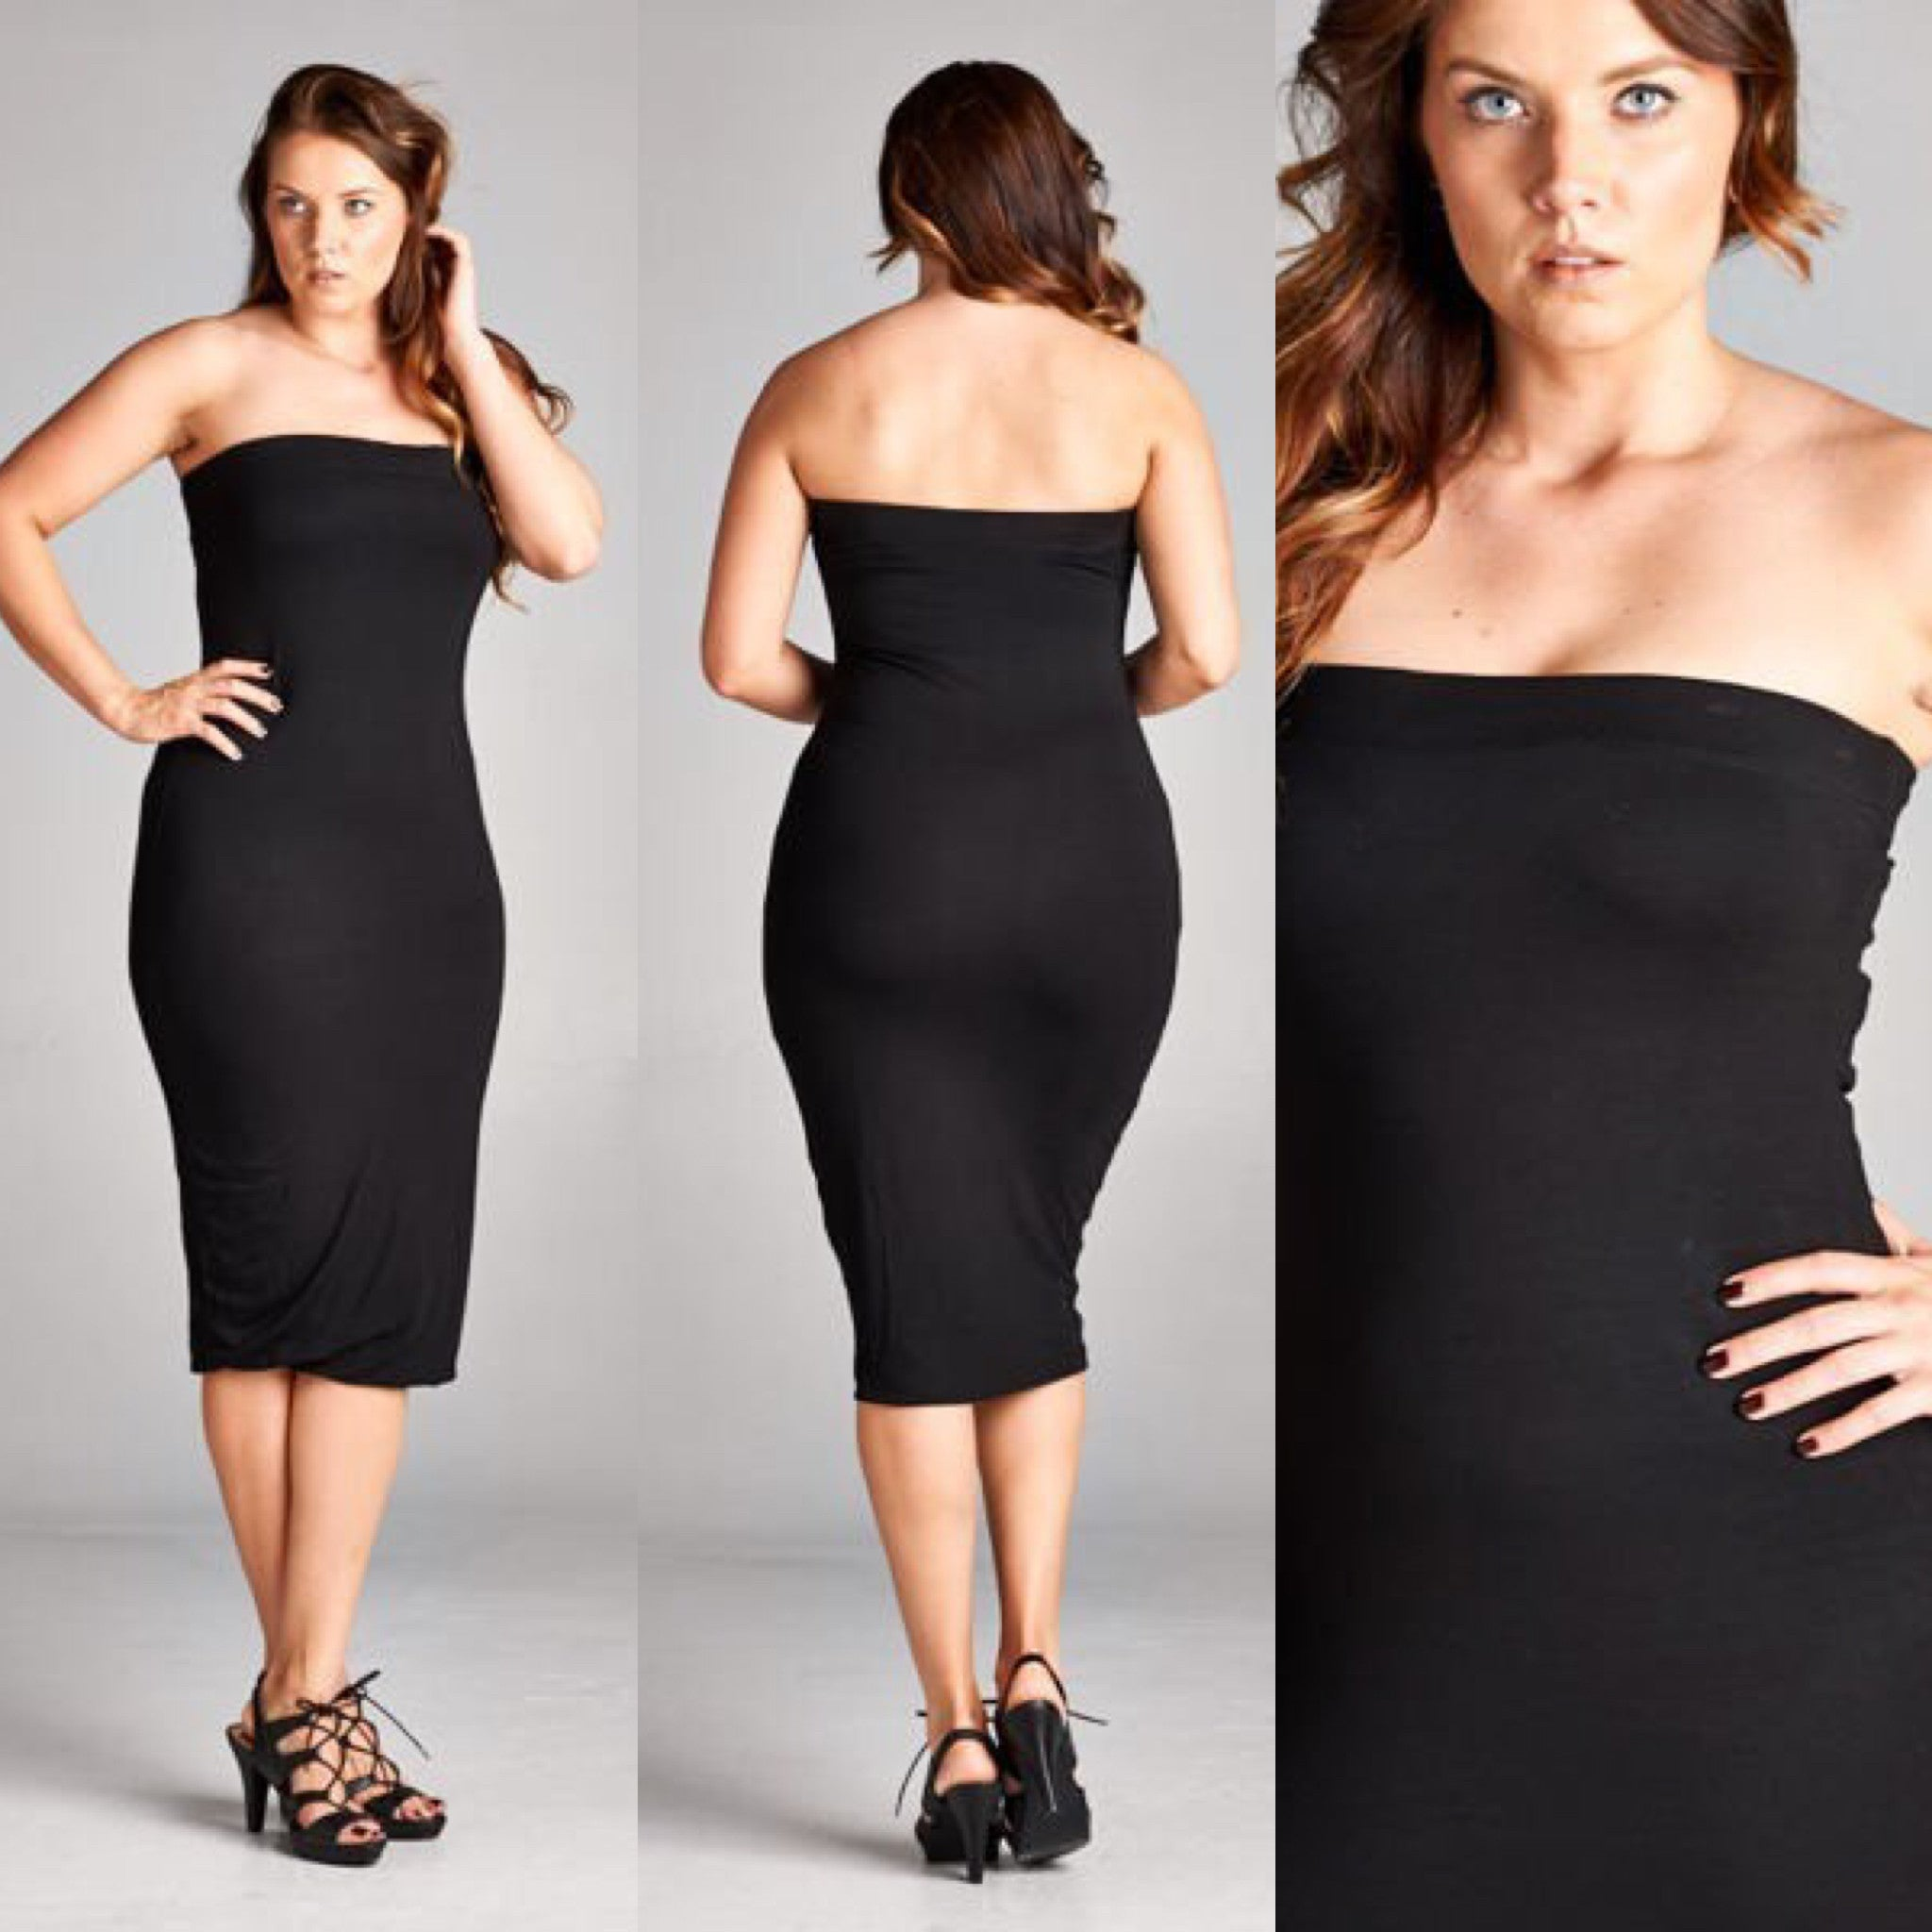 c8447cd06a8626 Buy Black Plus Size Strapless Tube Top Dress at Social Butterfly ...